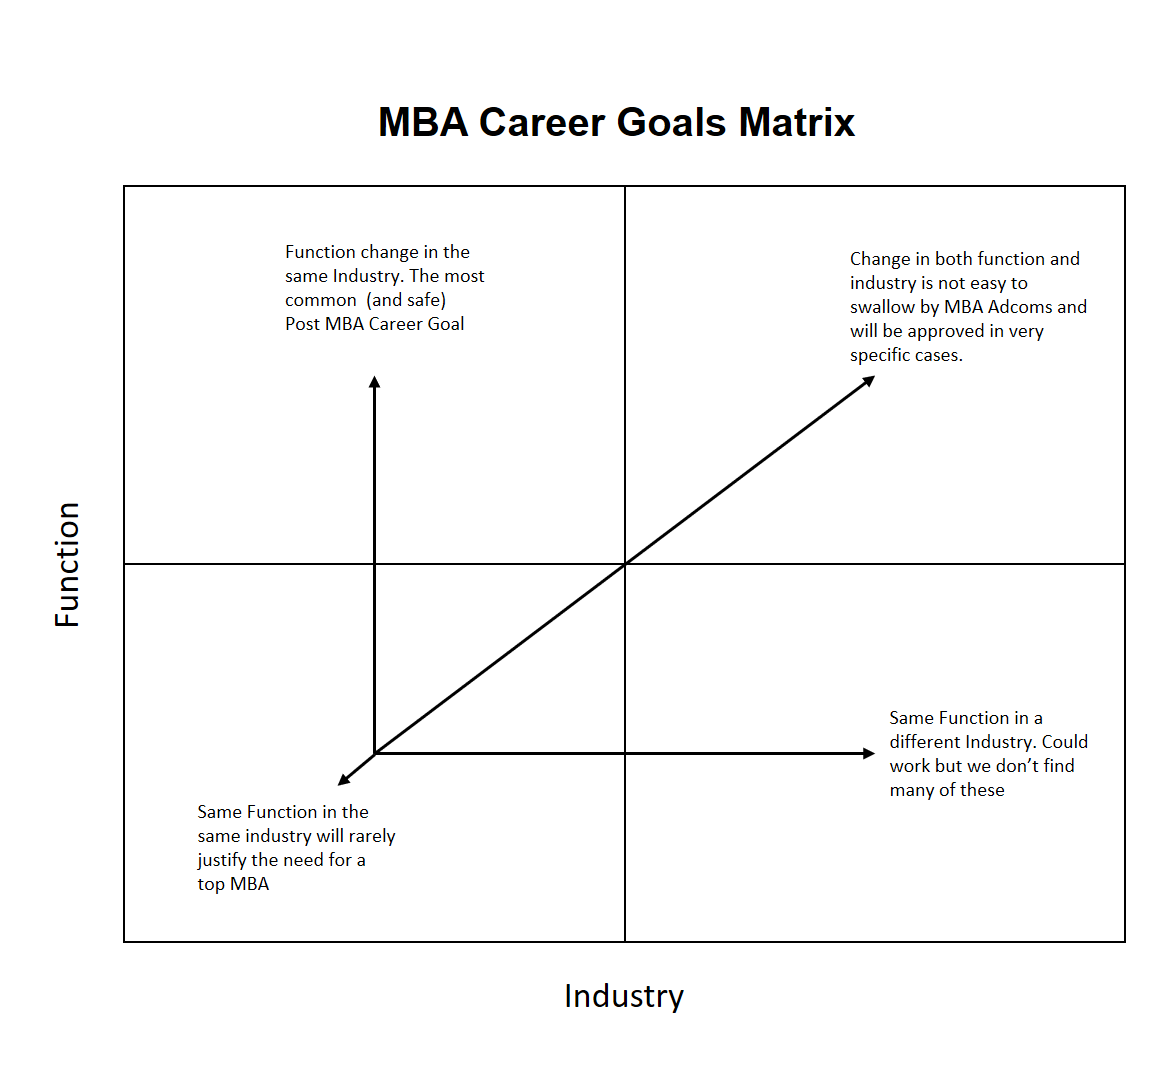 columbia business school essays analysis ivy mba consulting career matrix